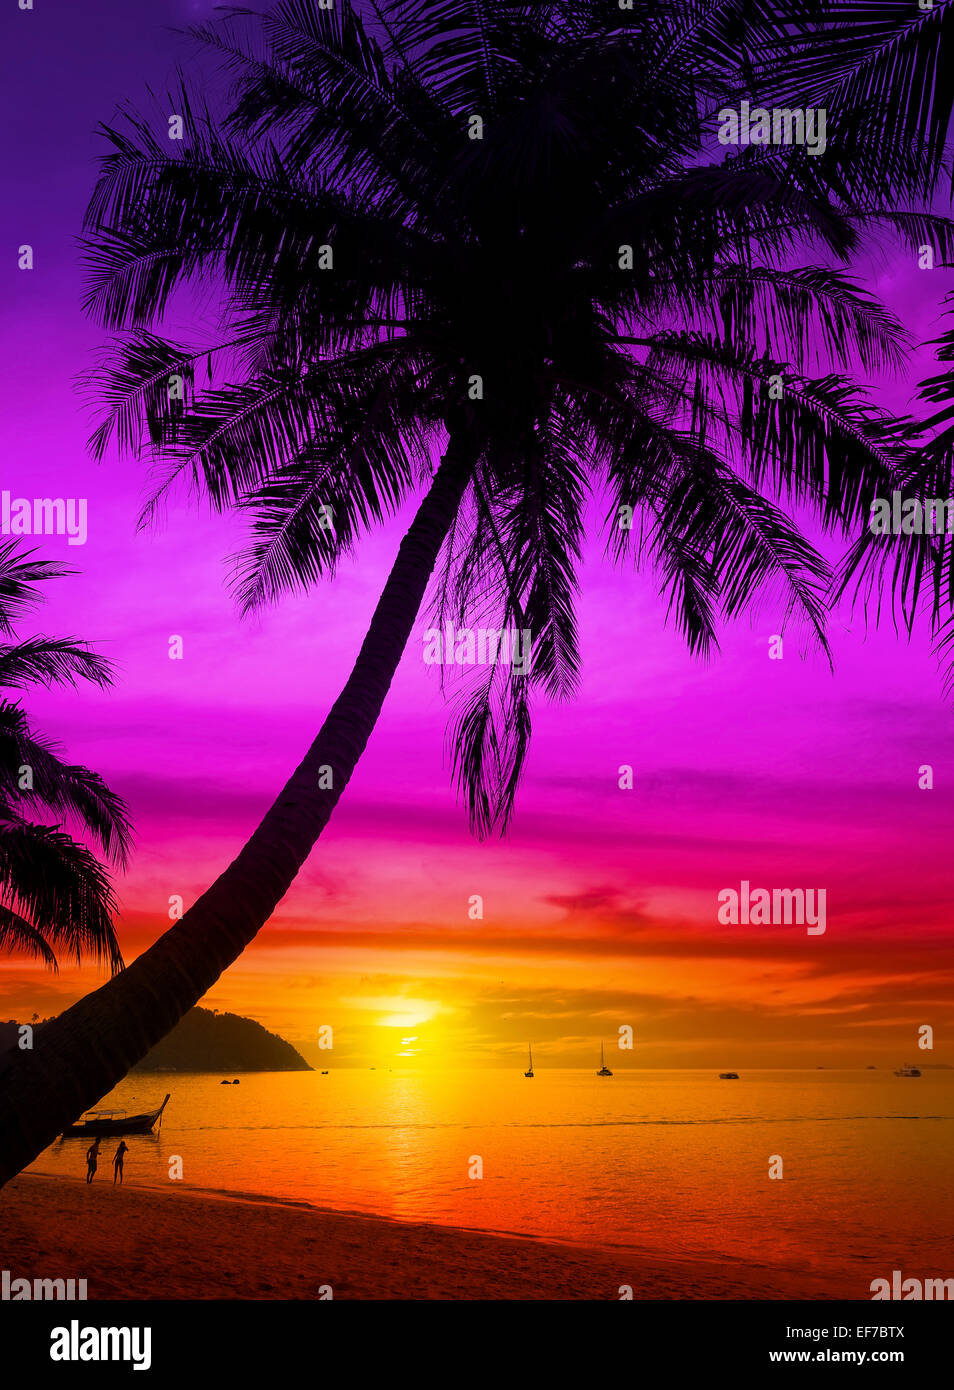 Palm tree silhouette on tropical beach at sunset. - Stock Image